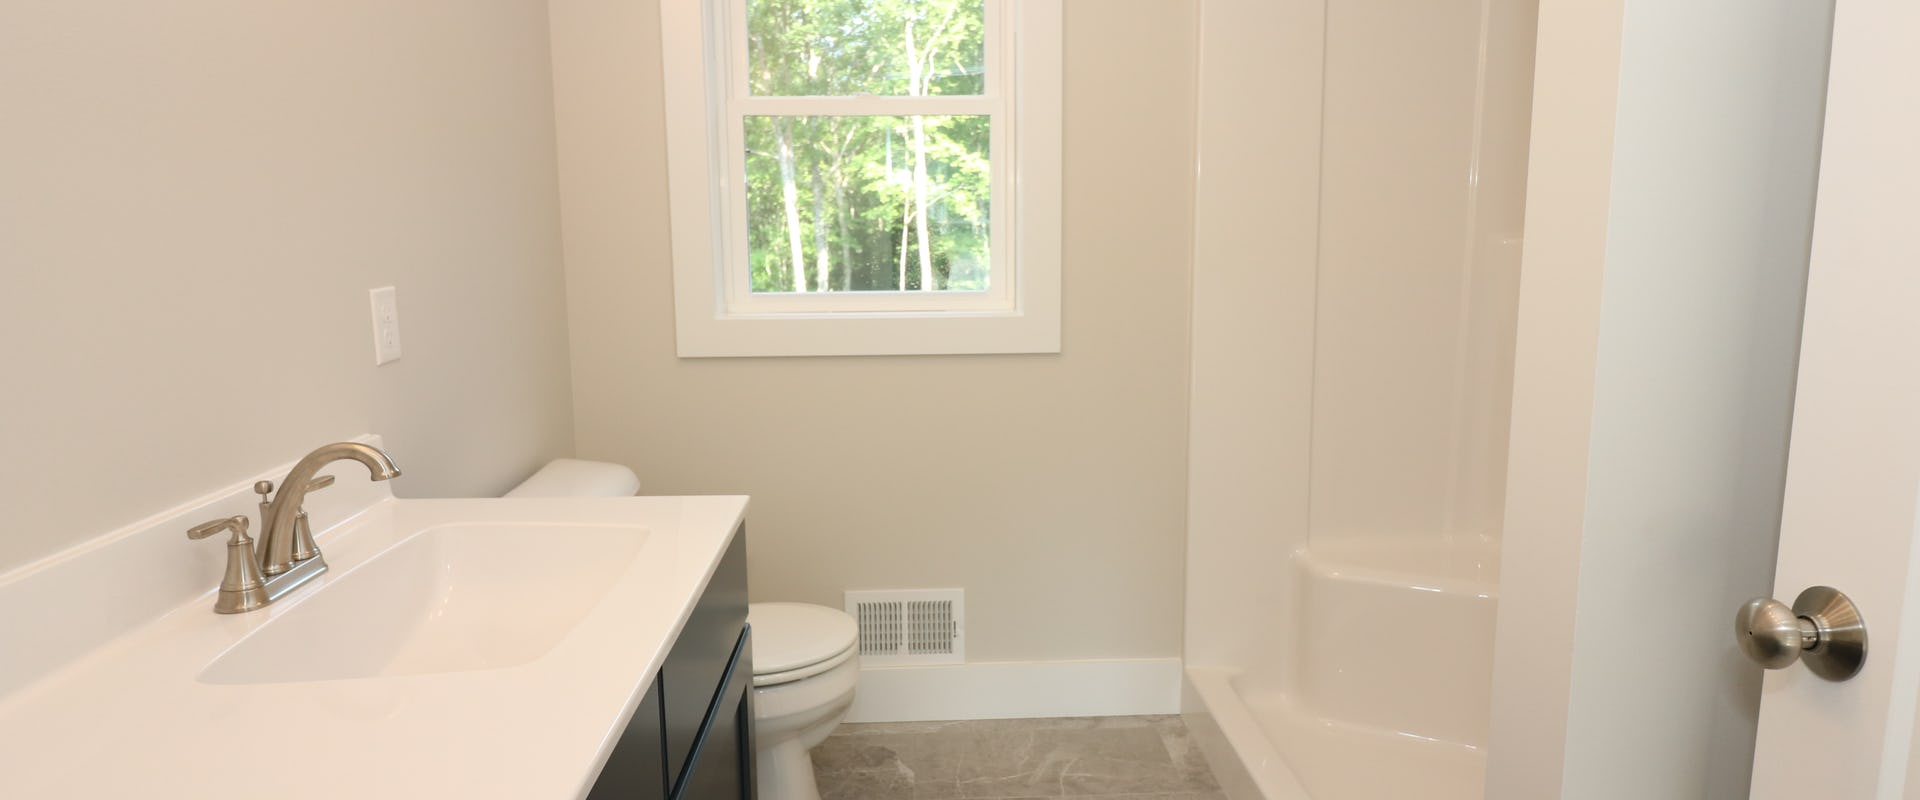 bathroom in new home